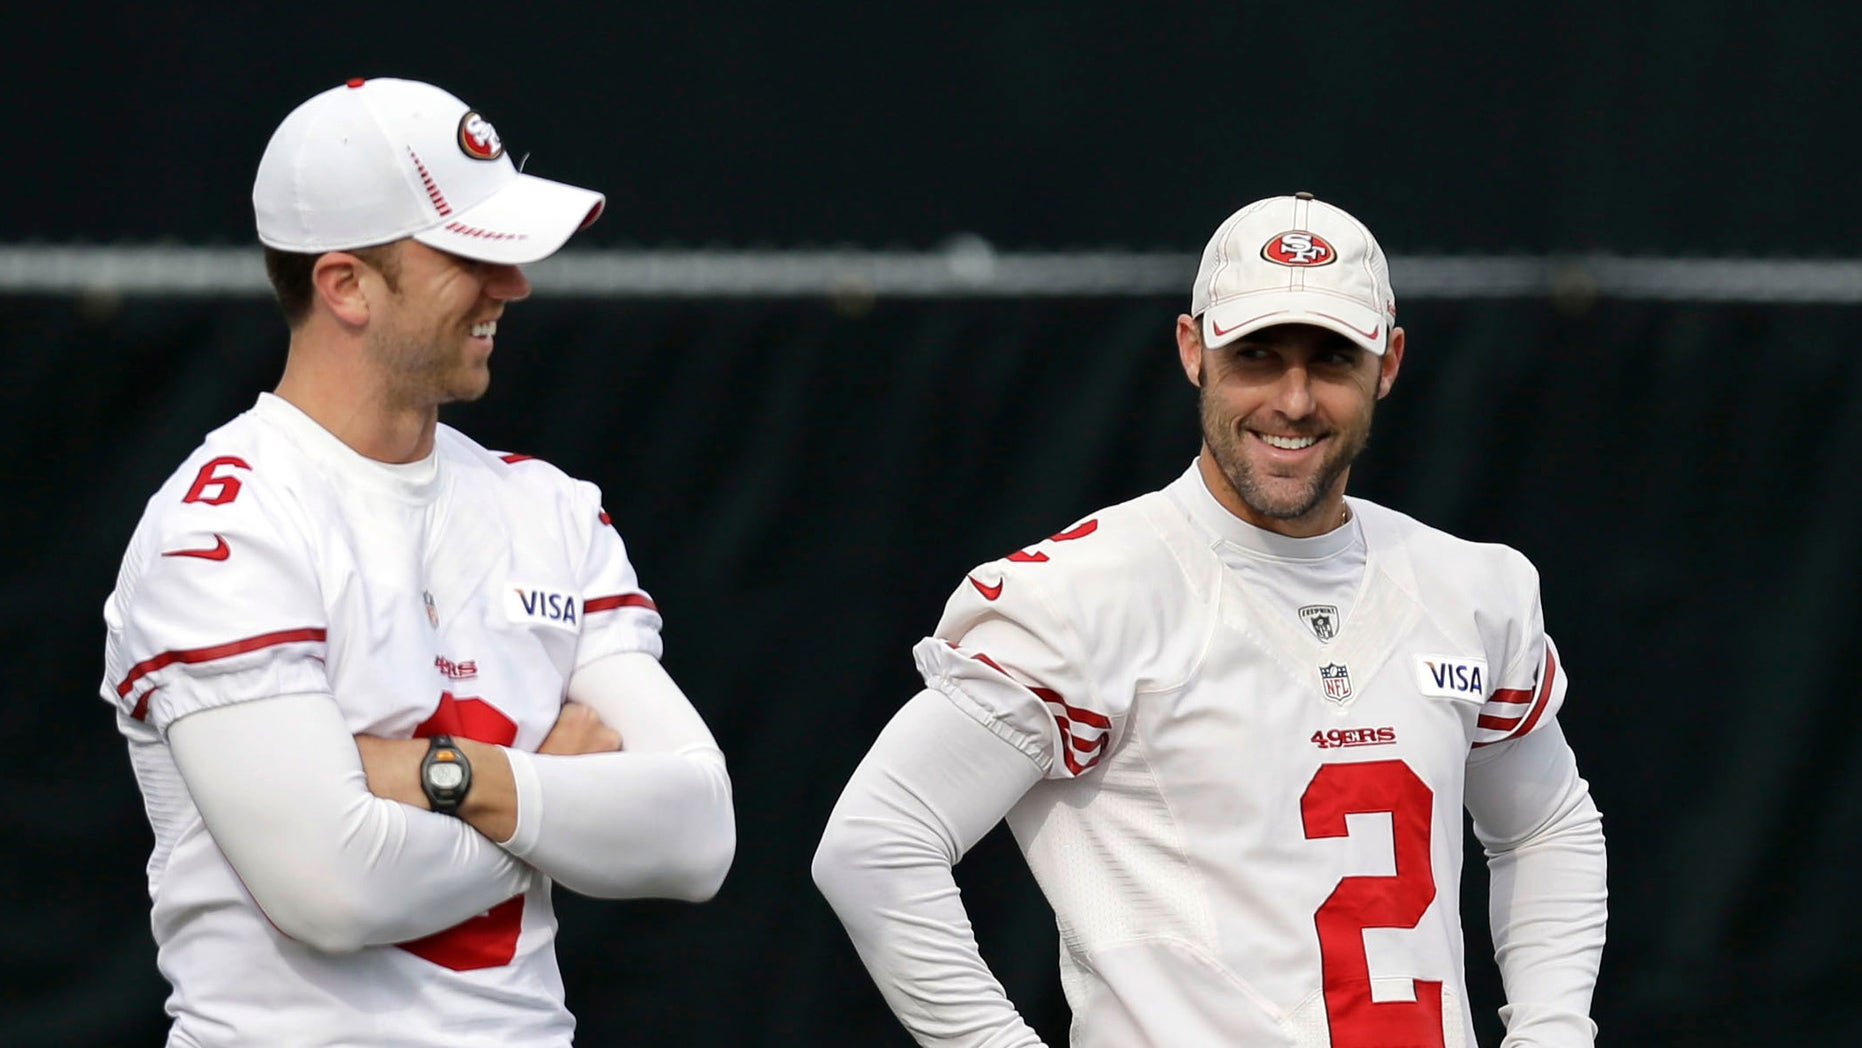 San Francisco 49ers place kickers Billy Cundiff, left, and David Akers (2) chat during NFL football practice in Santa Clara, Calif., Wednesday, Jan. 9, 2013. The 49ers host the Green Bay Packers in an NFC divisional playoff game on Saturday. (AP Photo/Marcio Jose Sanchez)